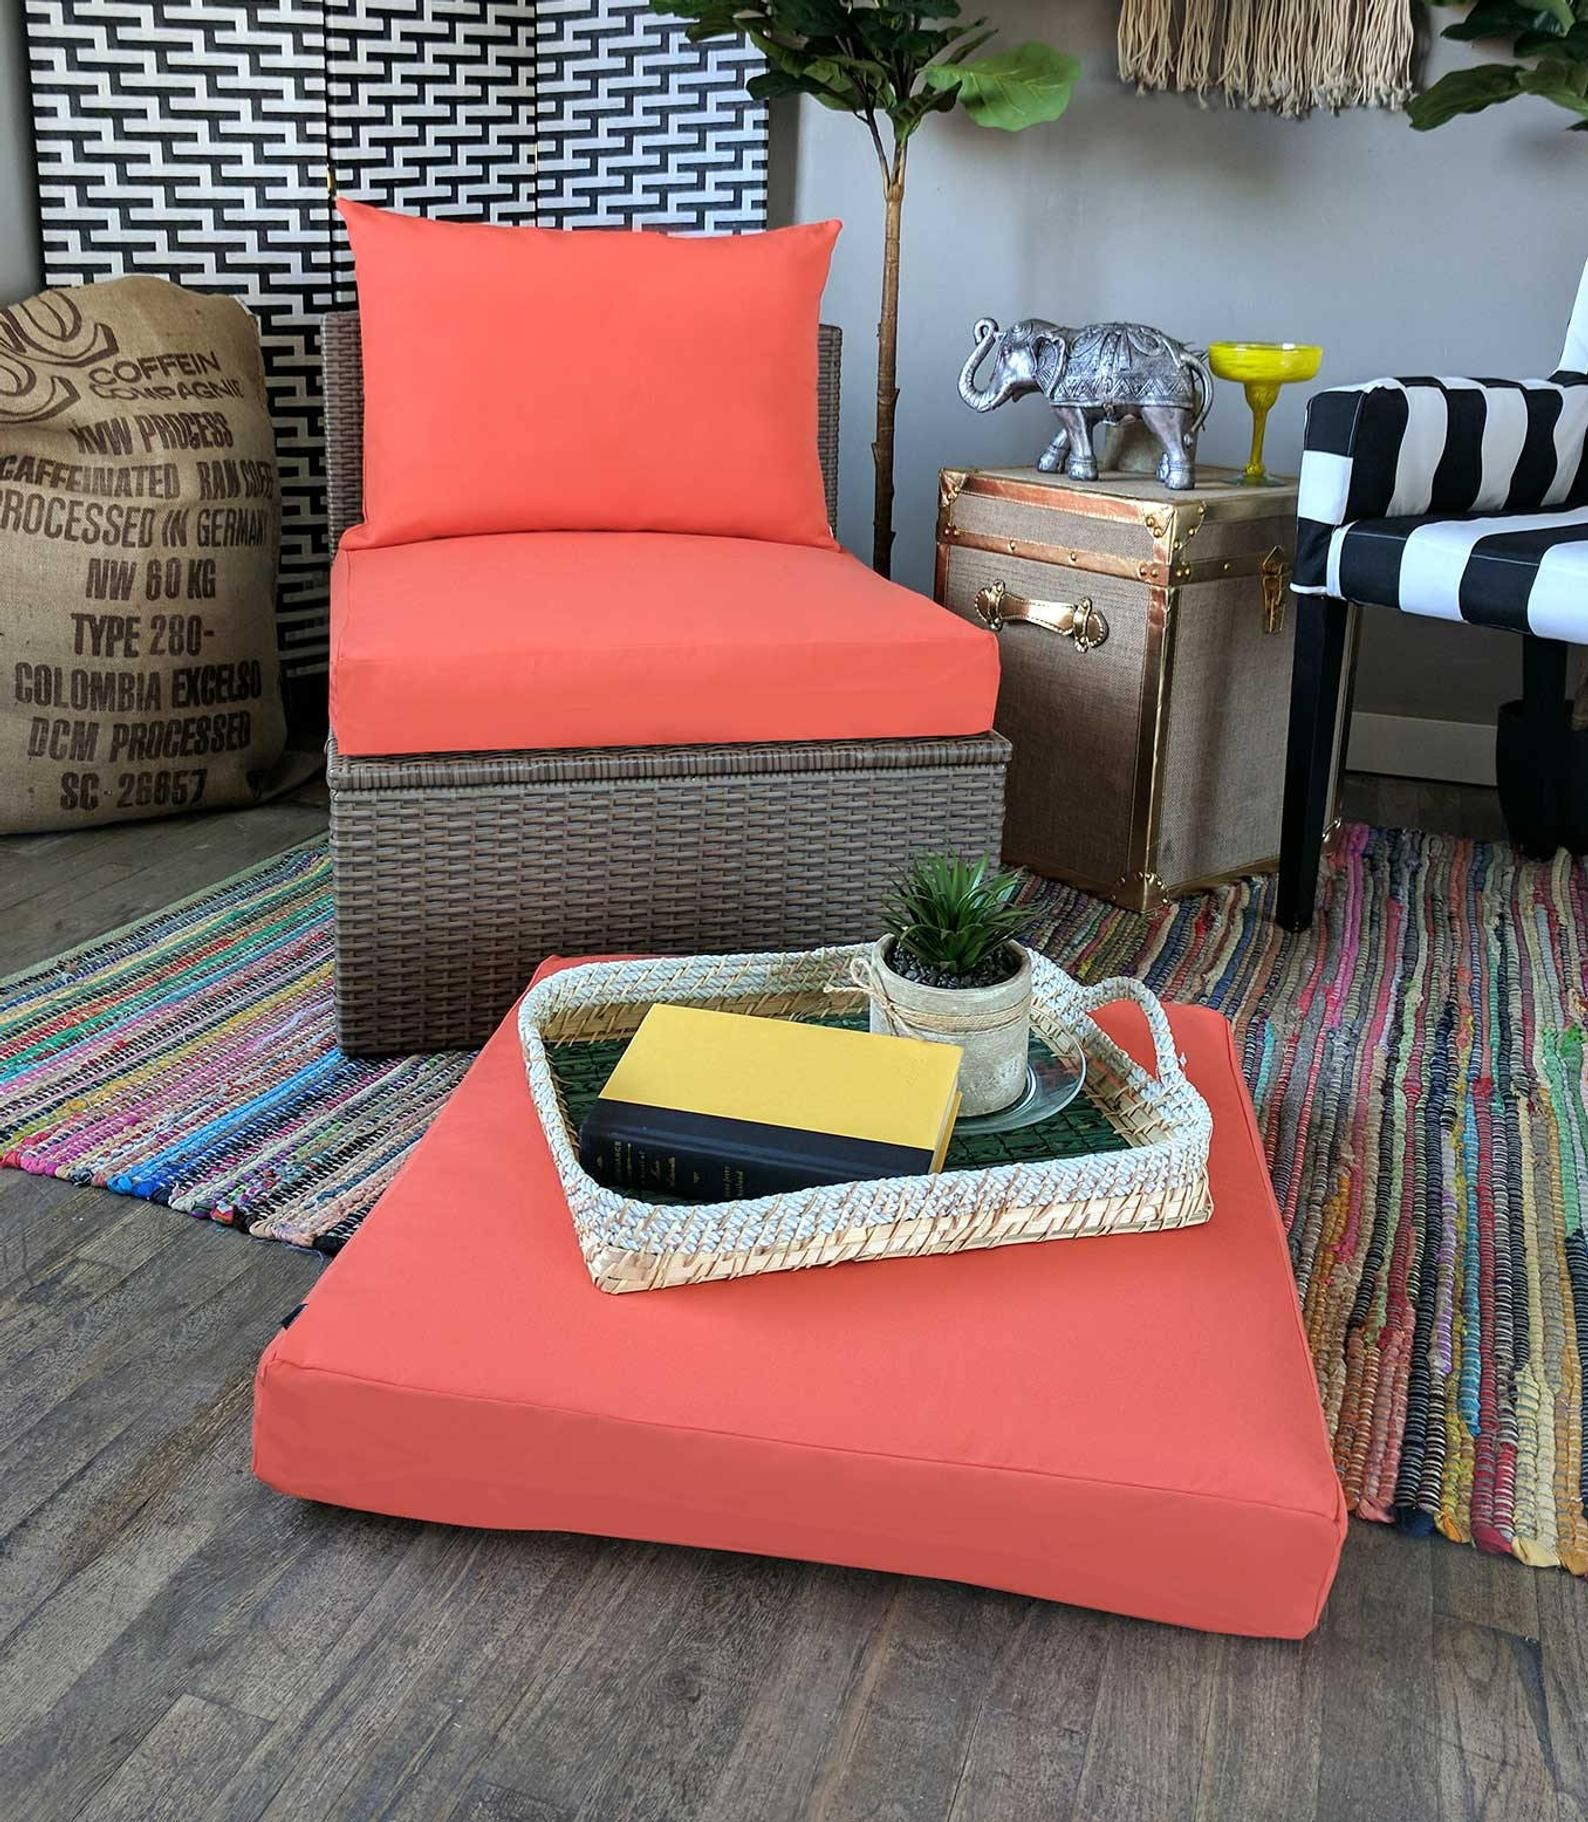 Ikea Outdoor Furniture With Sunbrella Slip Cover Solid Coral Pink